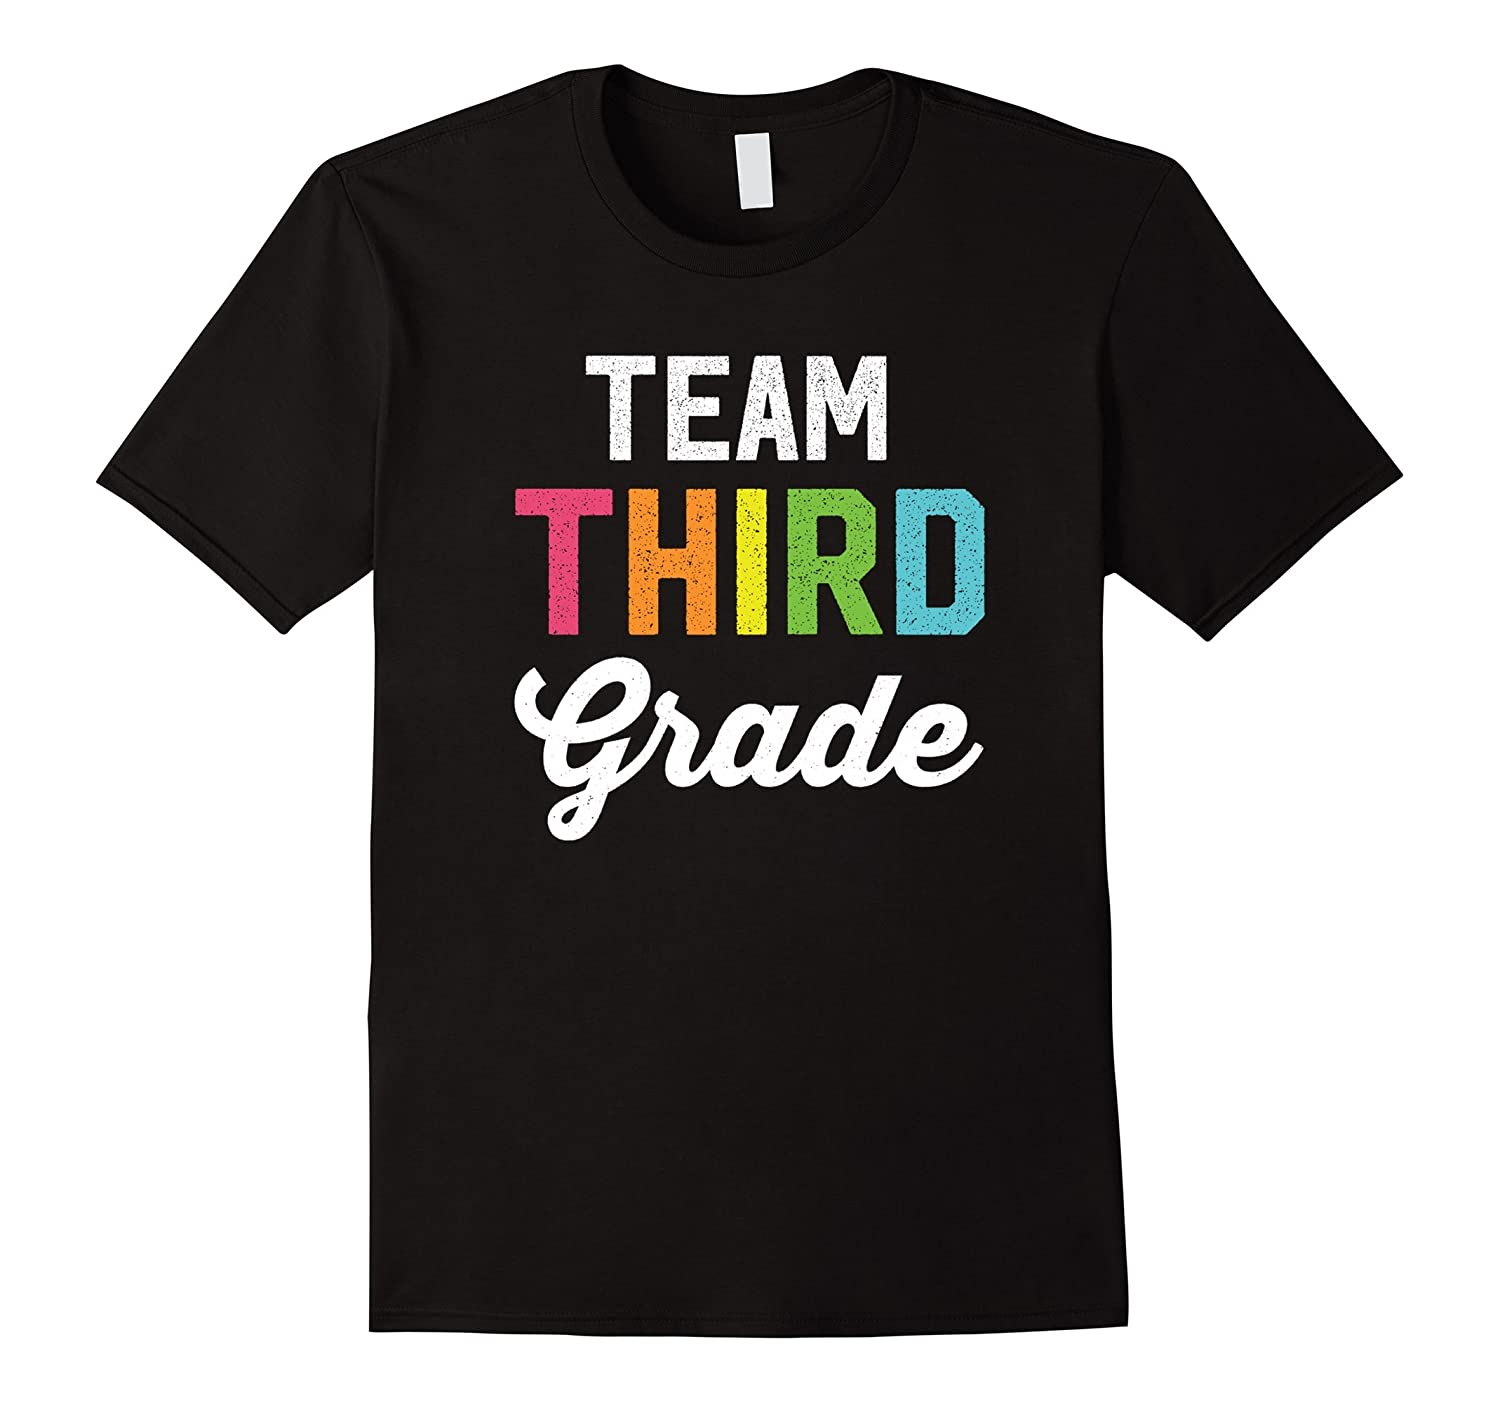 Team 3rd Third Grade Teacher - Back To School T-Shirt-FL